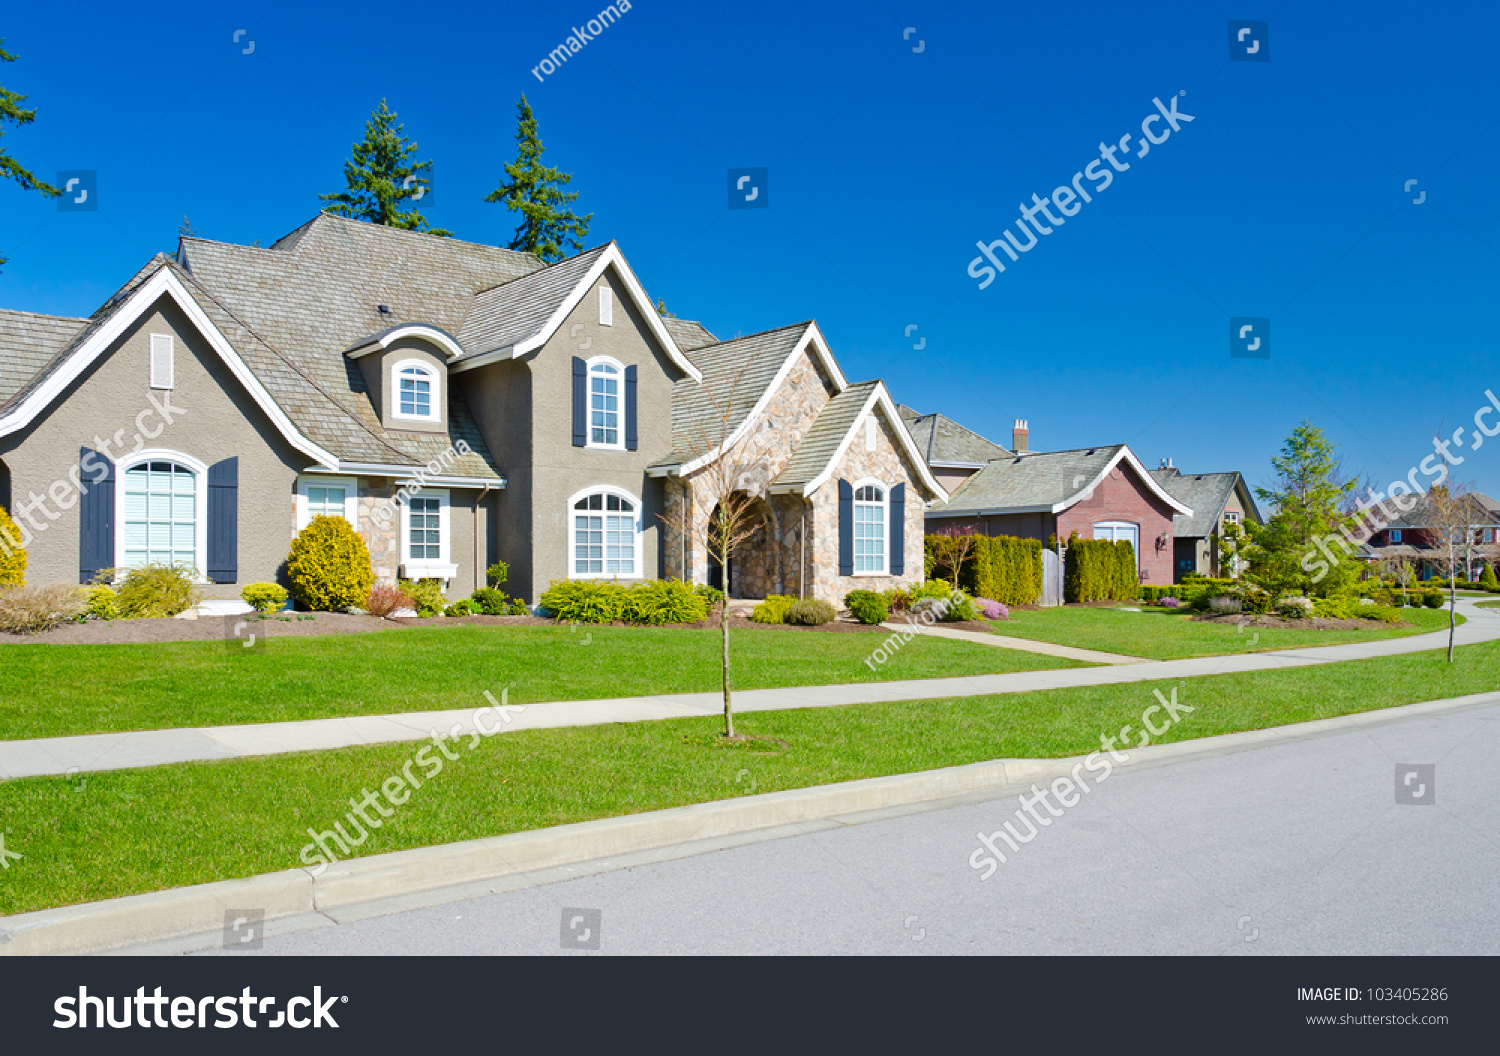 Great neighborhood empty street homes suburbs stock photo for Home builders in canada